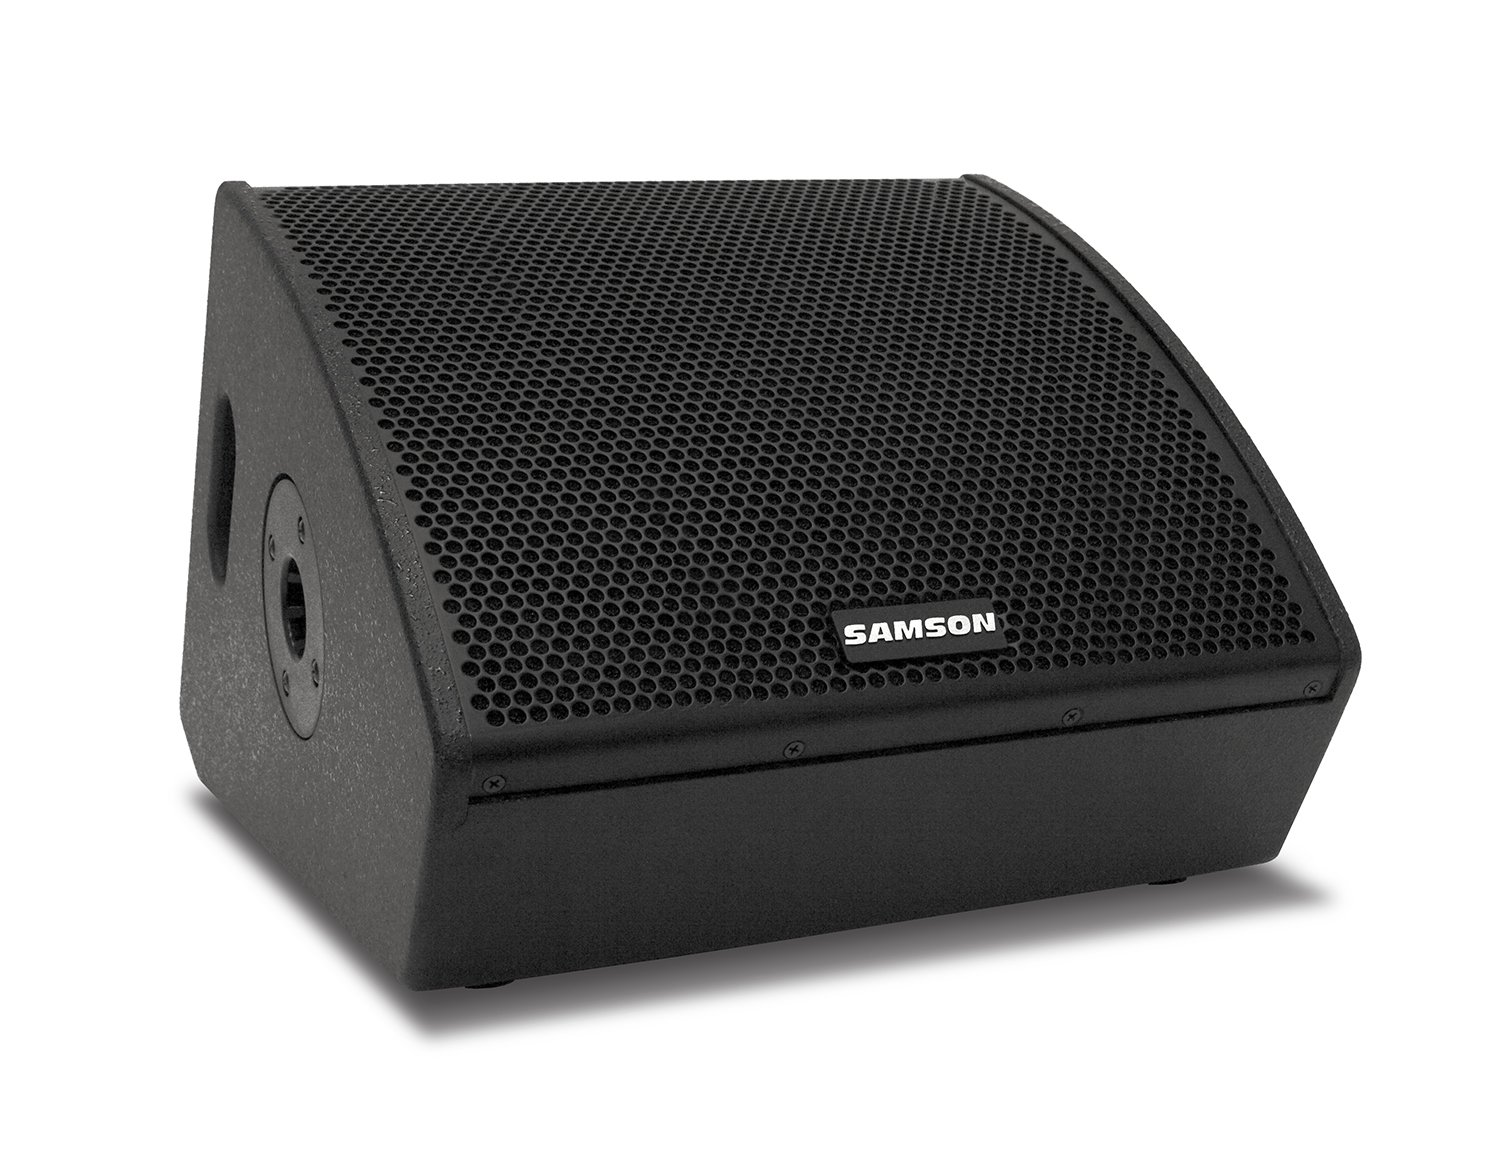 Samson RSXM12A - 800W 2-Way Active Stage Monitor by Samson Technologies